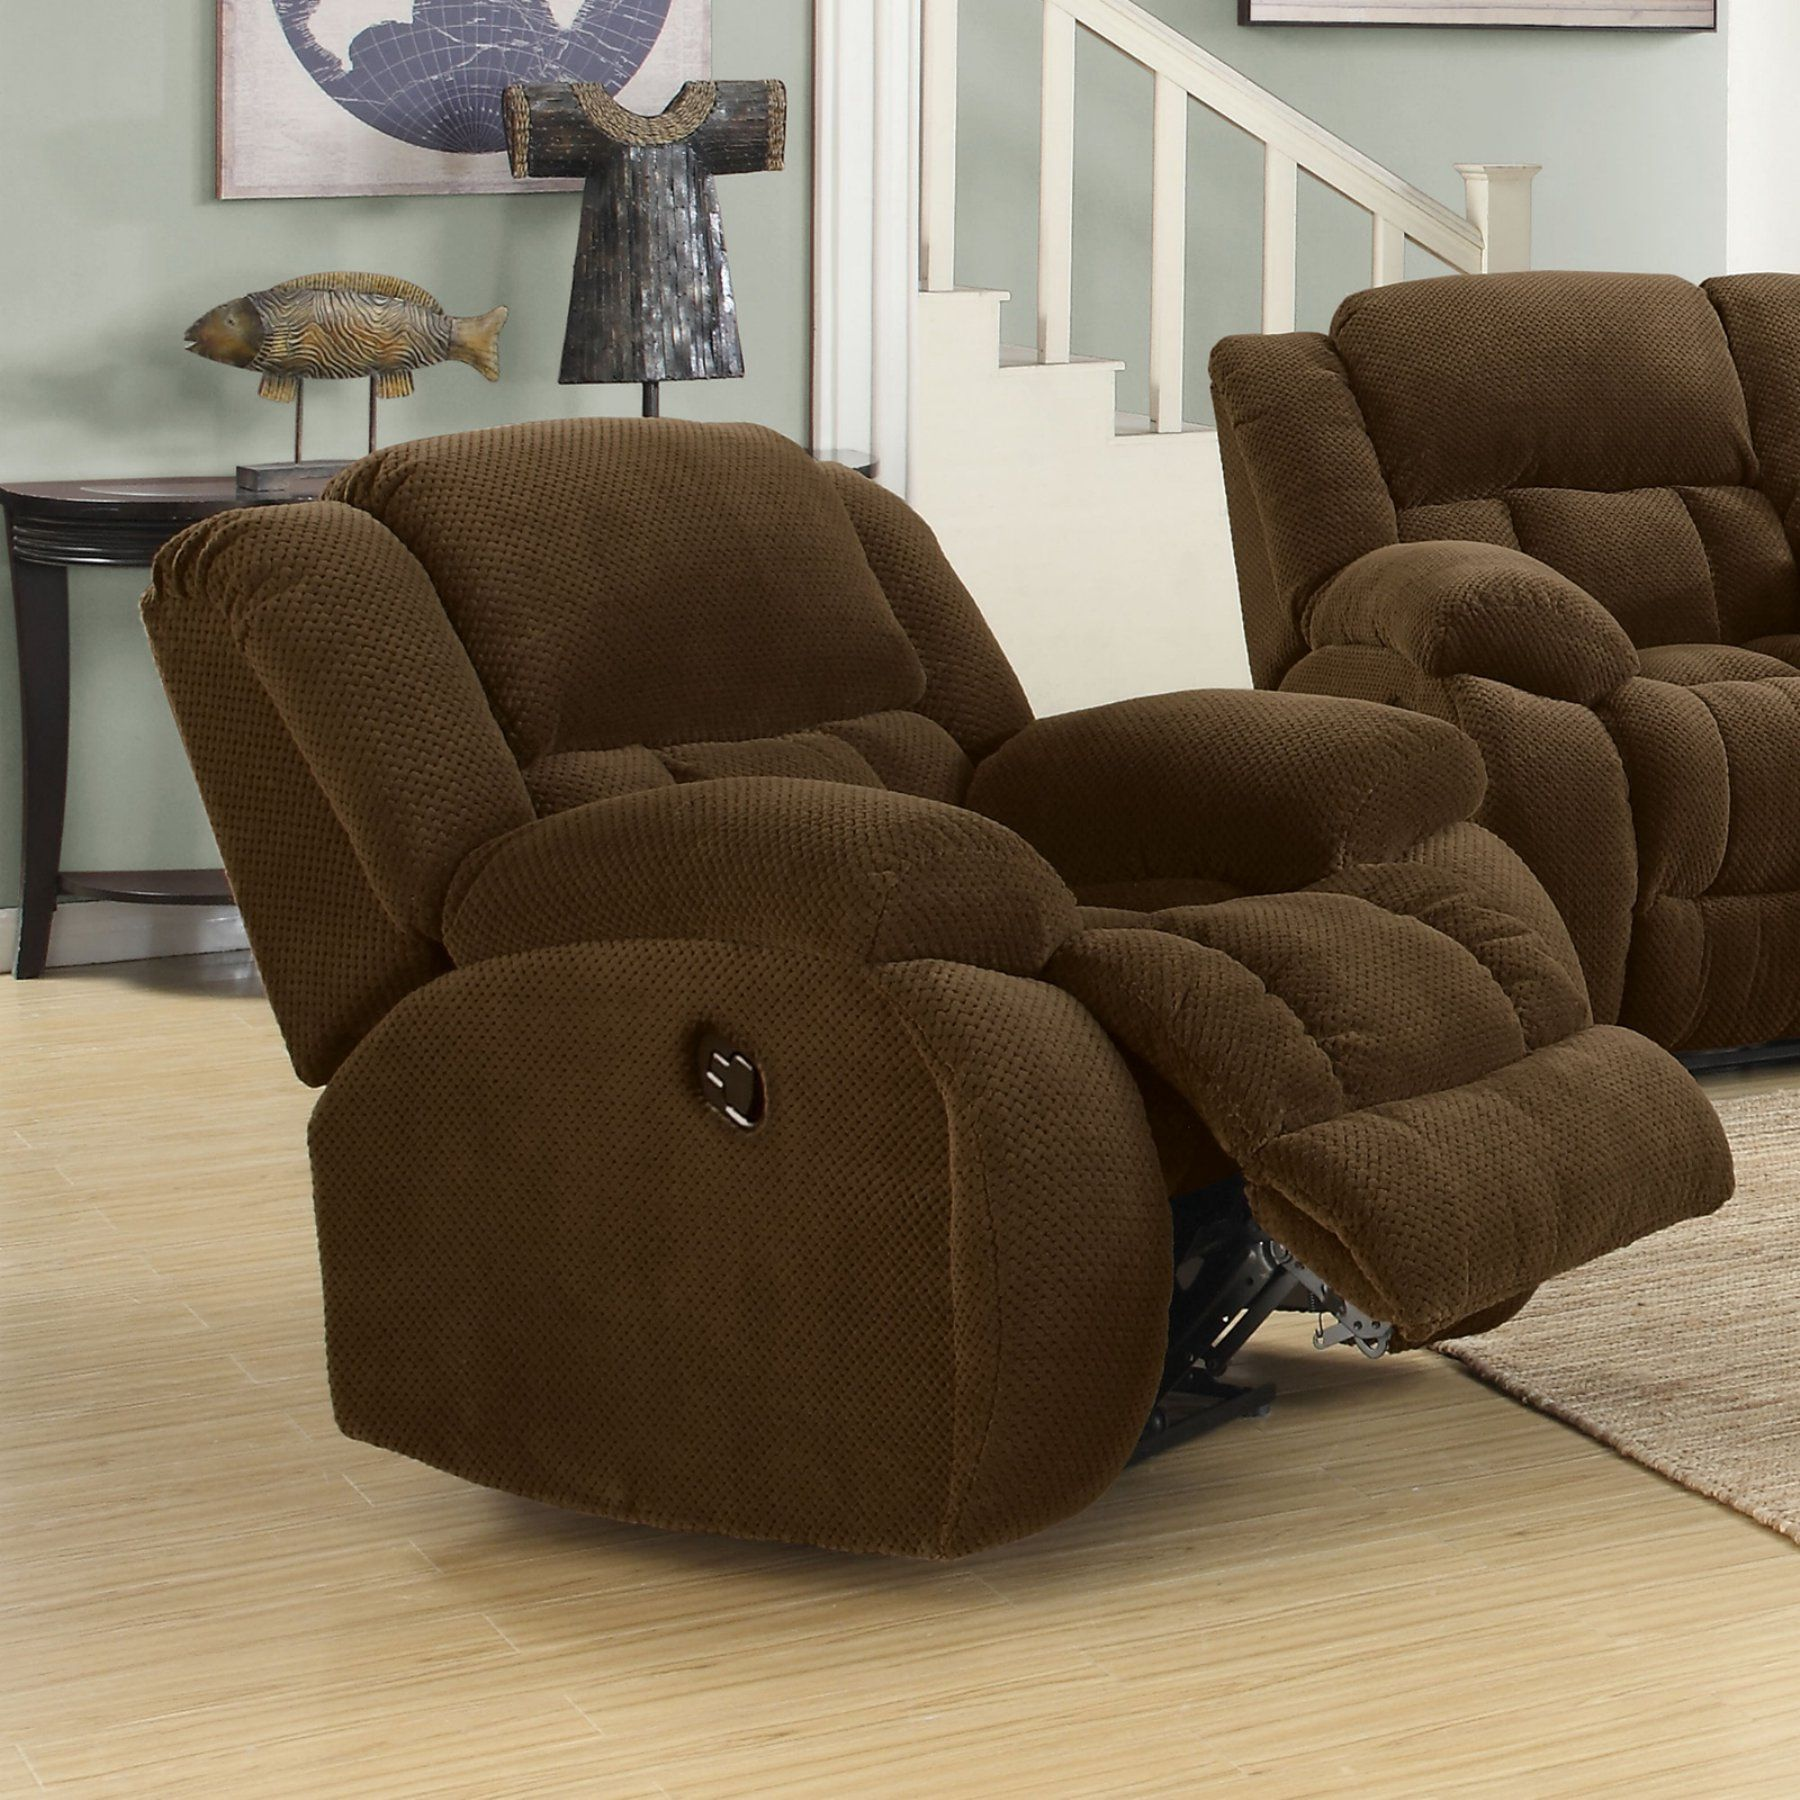 Surprising Coaster Richland Recliner Products Recliner Glider Gmtry Best Dining Table And Chair Ideas Images Gmtryco